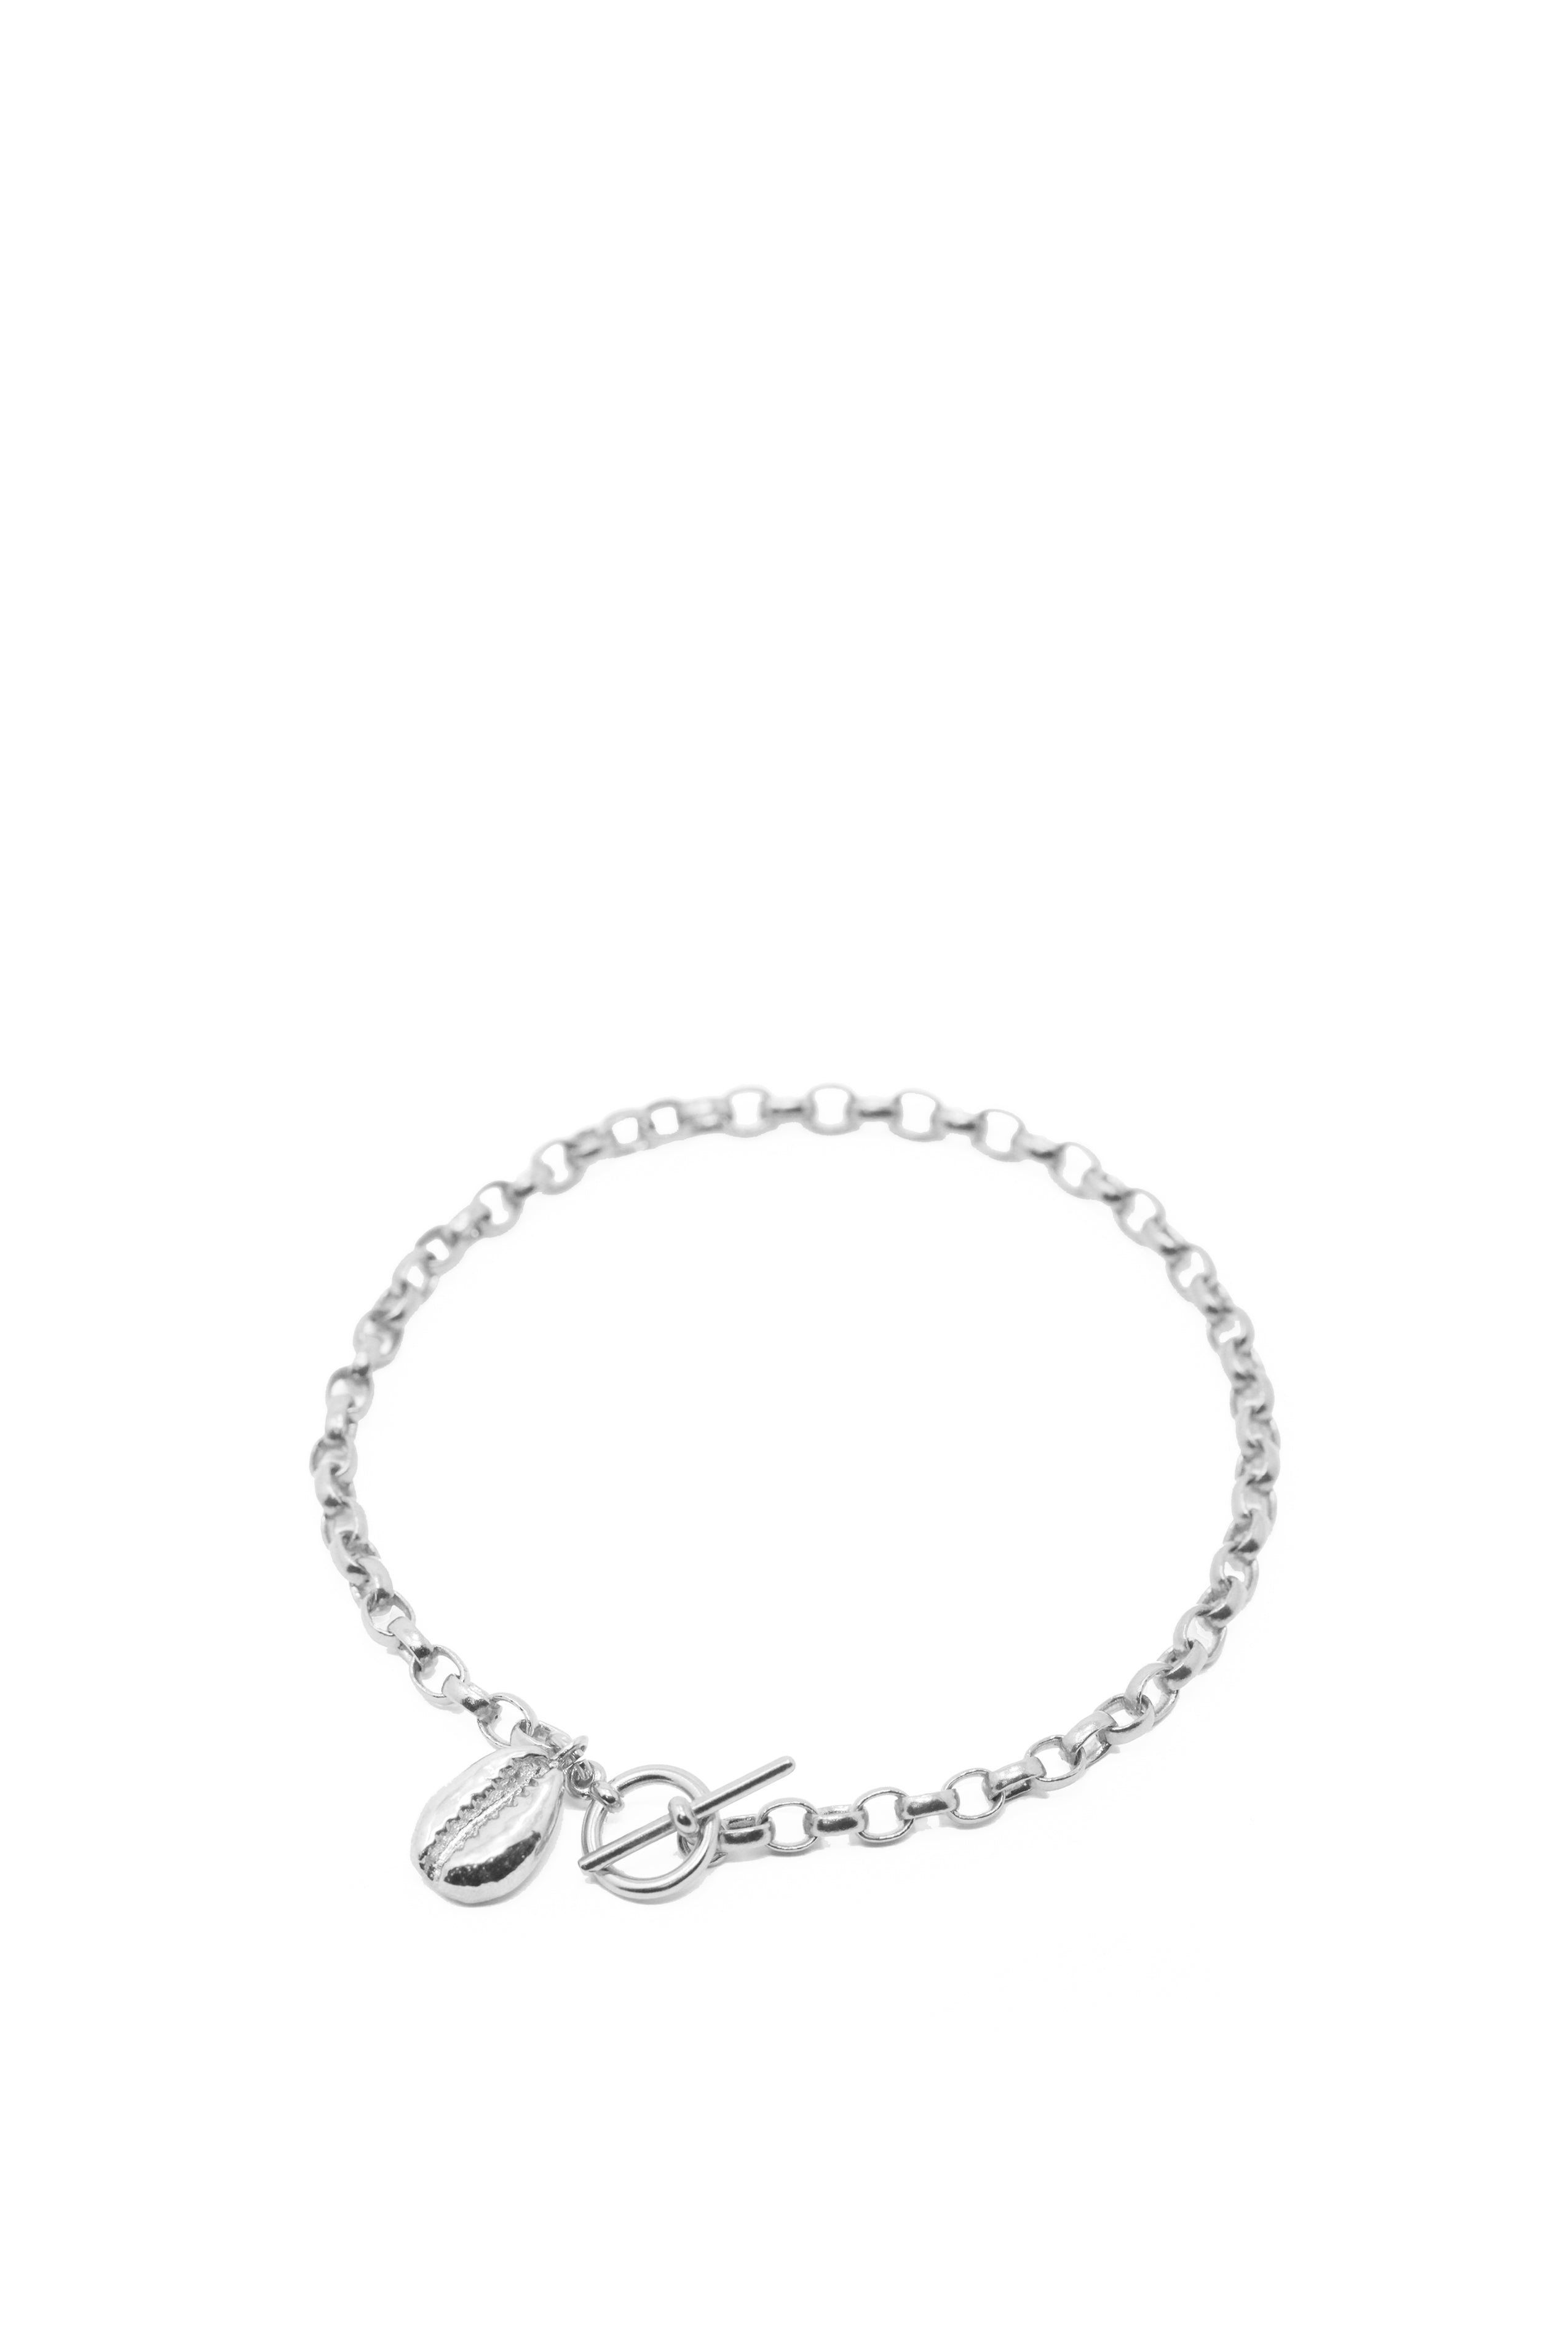 THE TOGGLE II Anklet with Cowrie Pendant in Silver